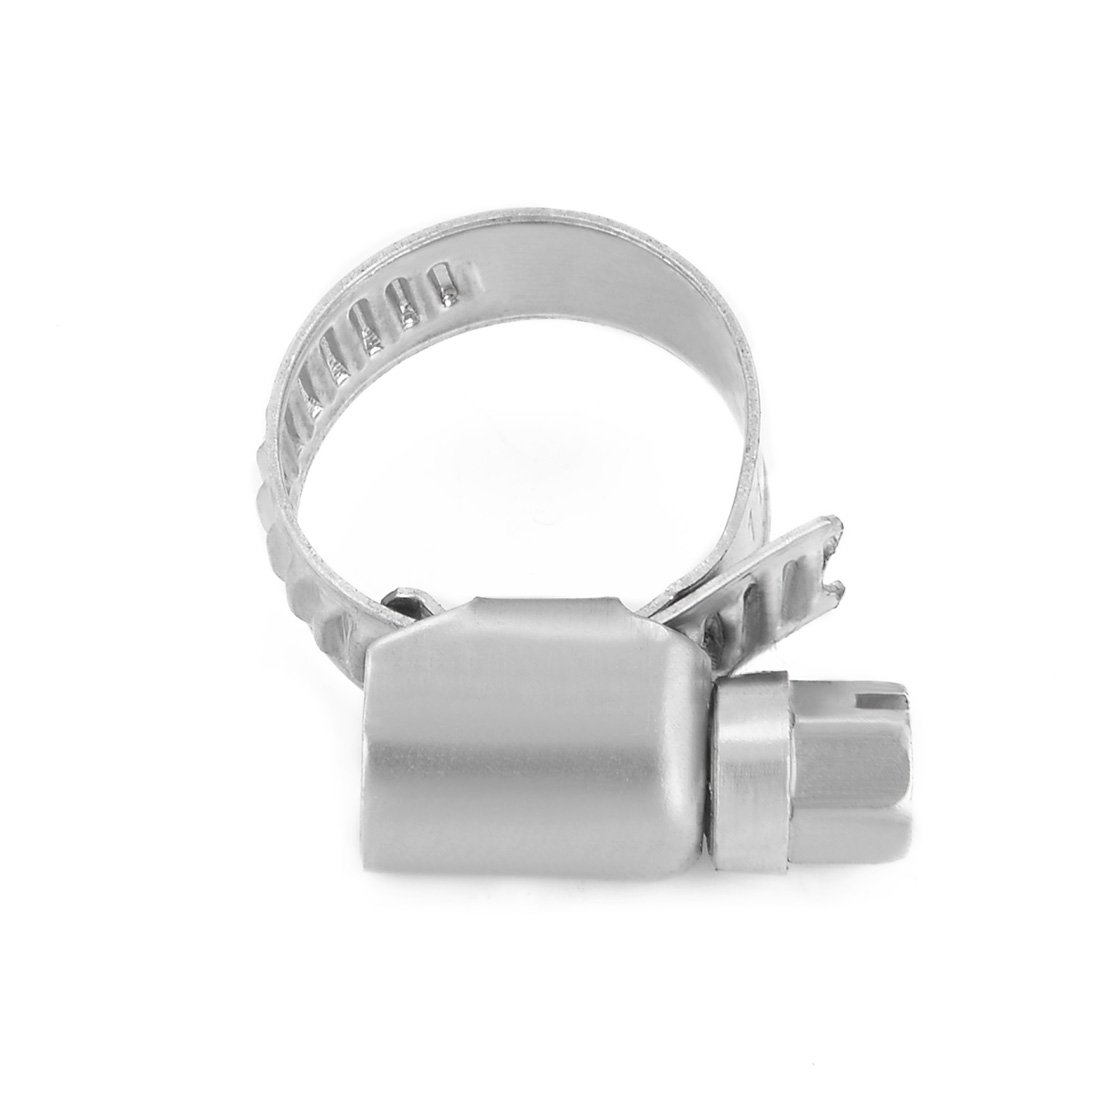 uxcell 18mm to 32mm Dia Range 304 Stainless Steel German Type Hose Clamp Hoop 10pcs